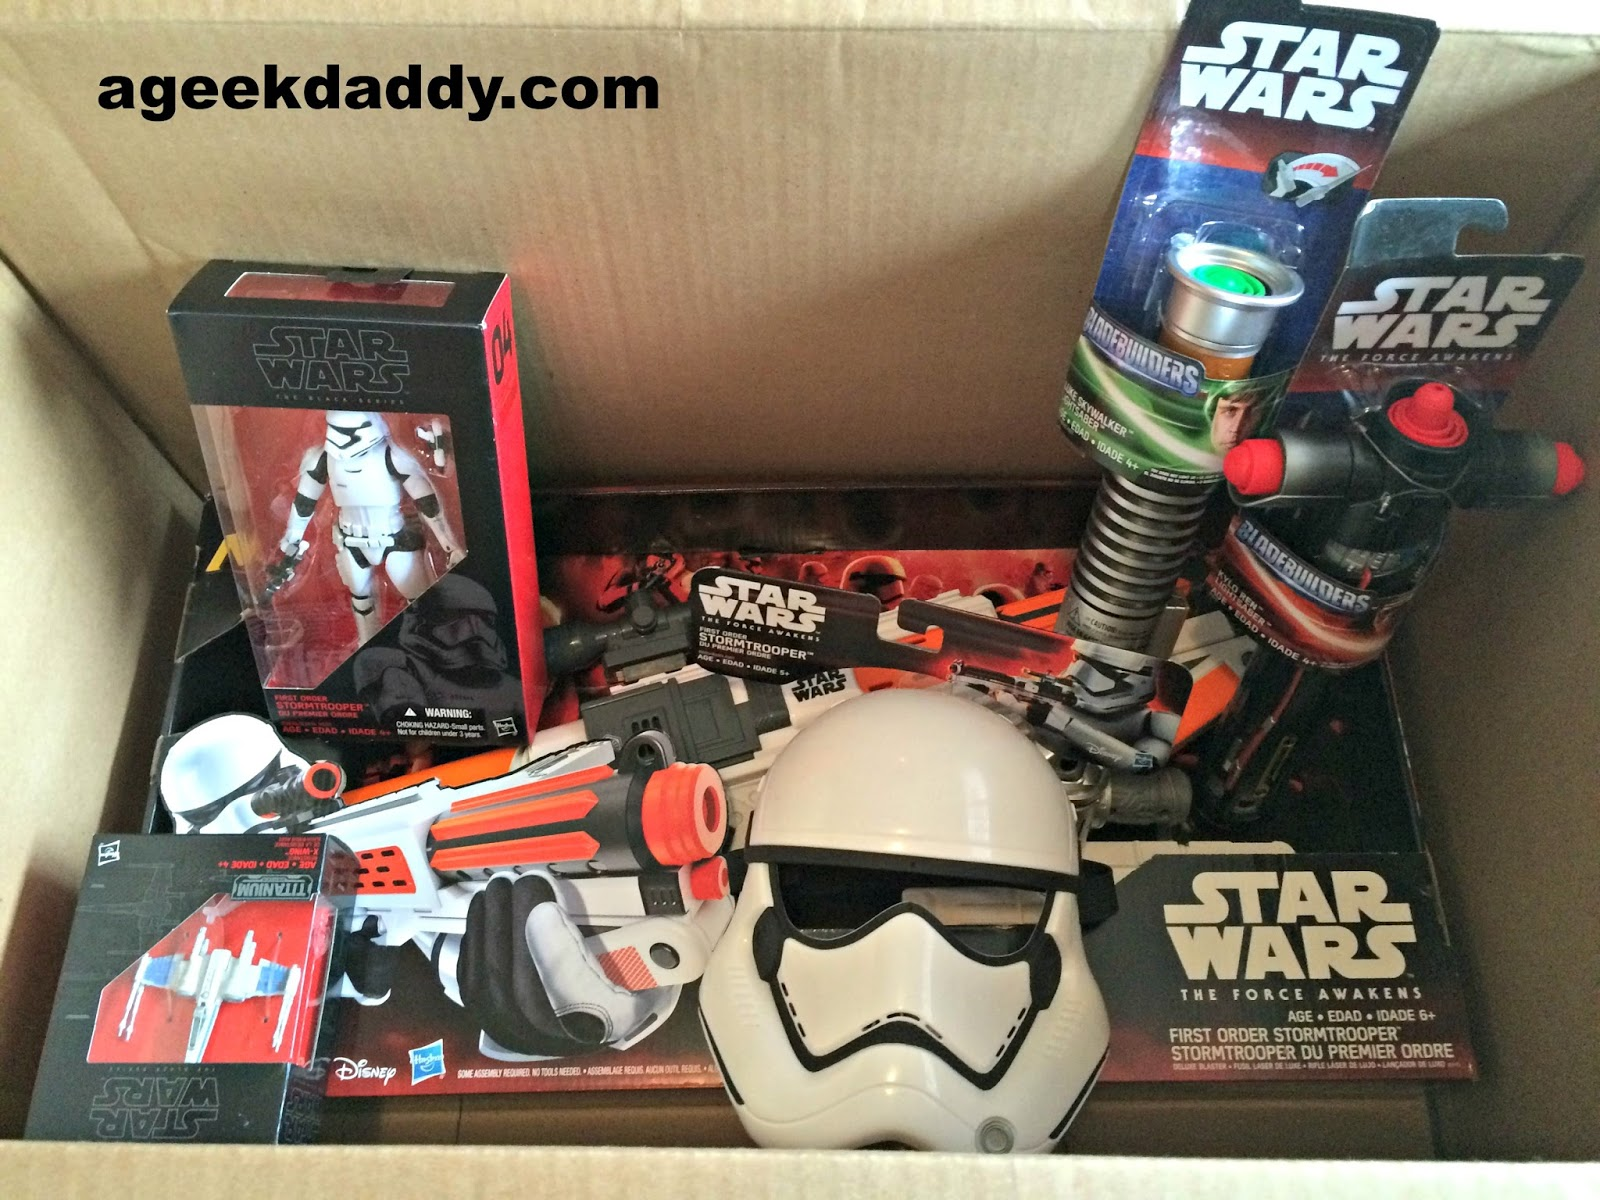 A GEEK DADDY The Force Awakens Hasbro s Star Wars Toy Line